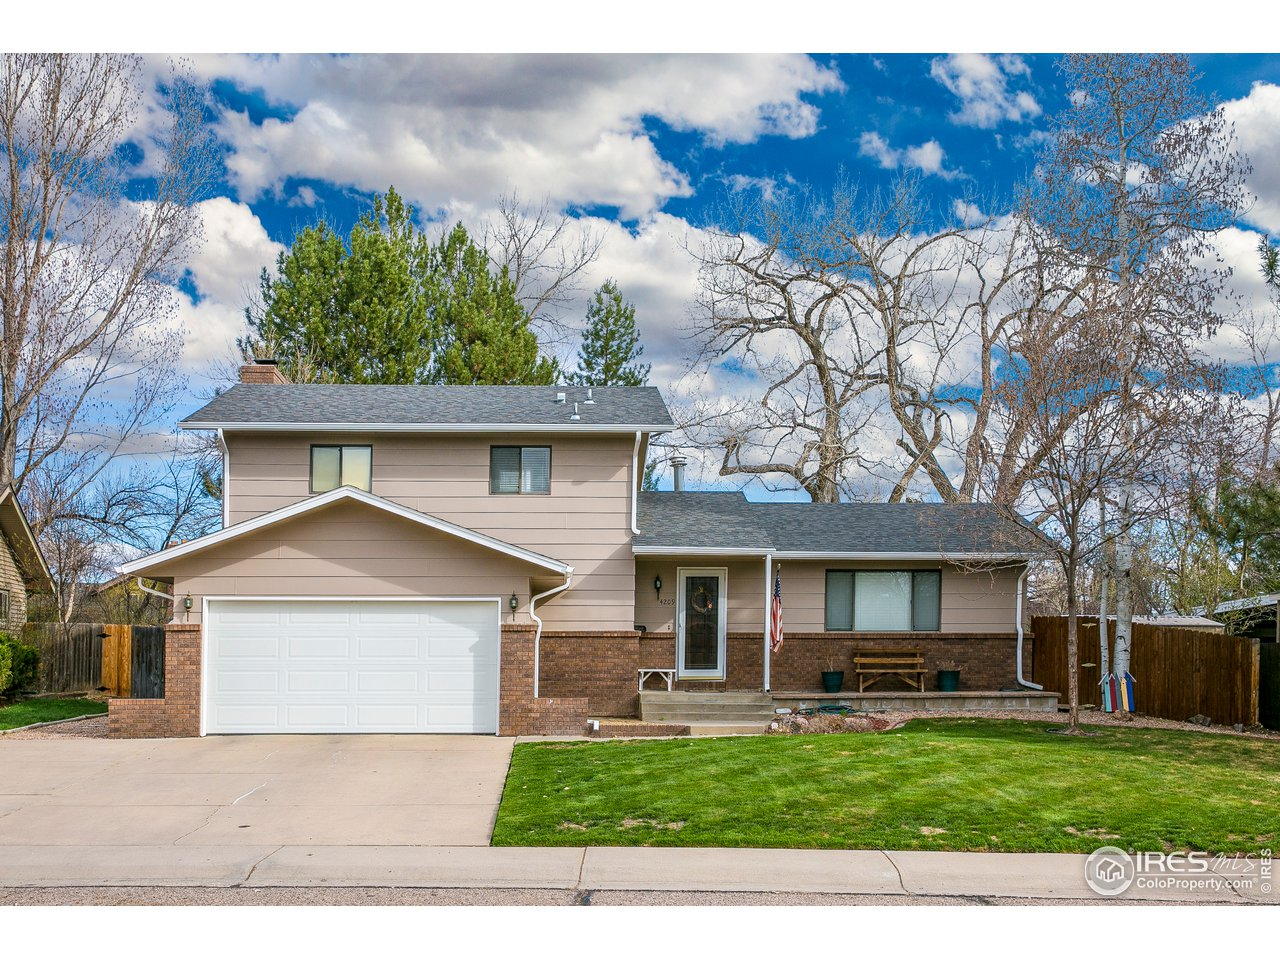 4209 W 21ST ST RD, GREELEY, CO 80634